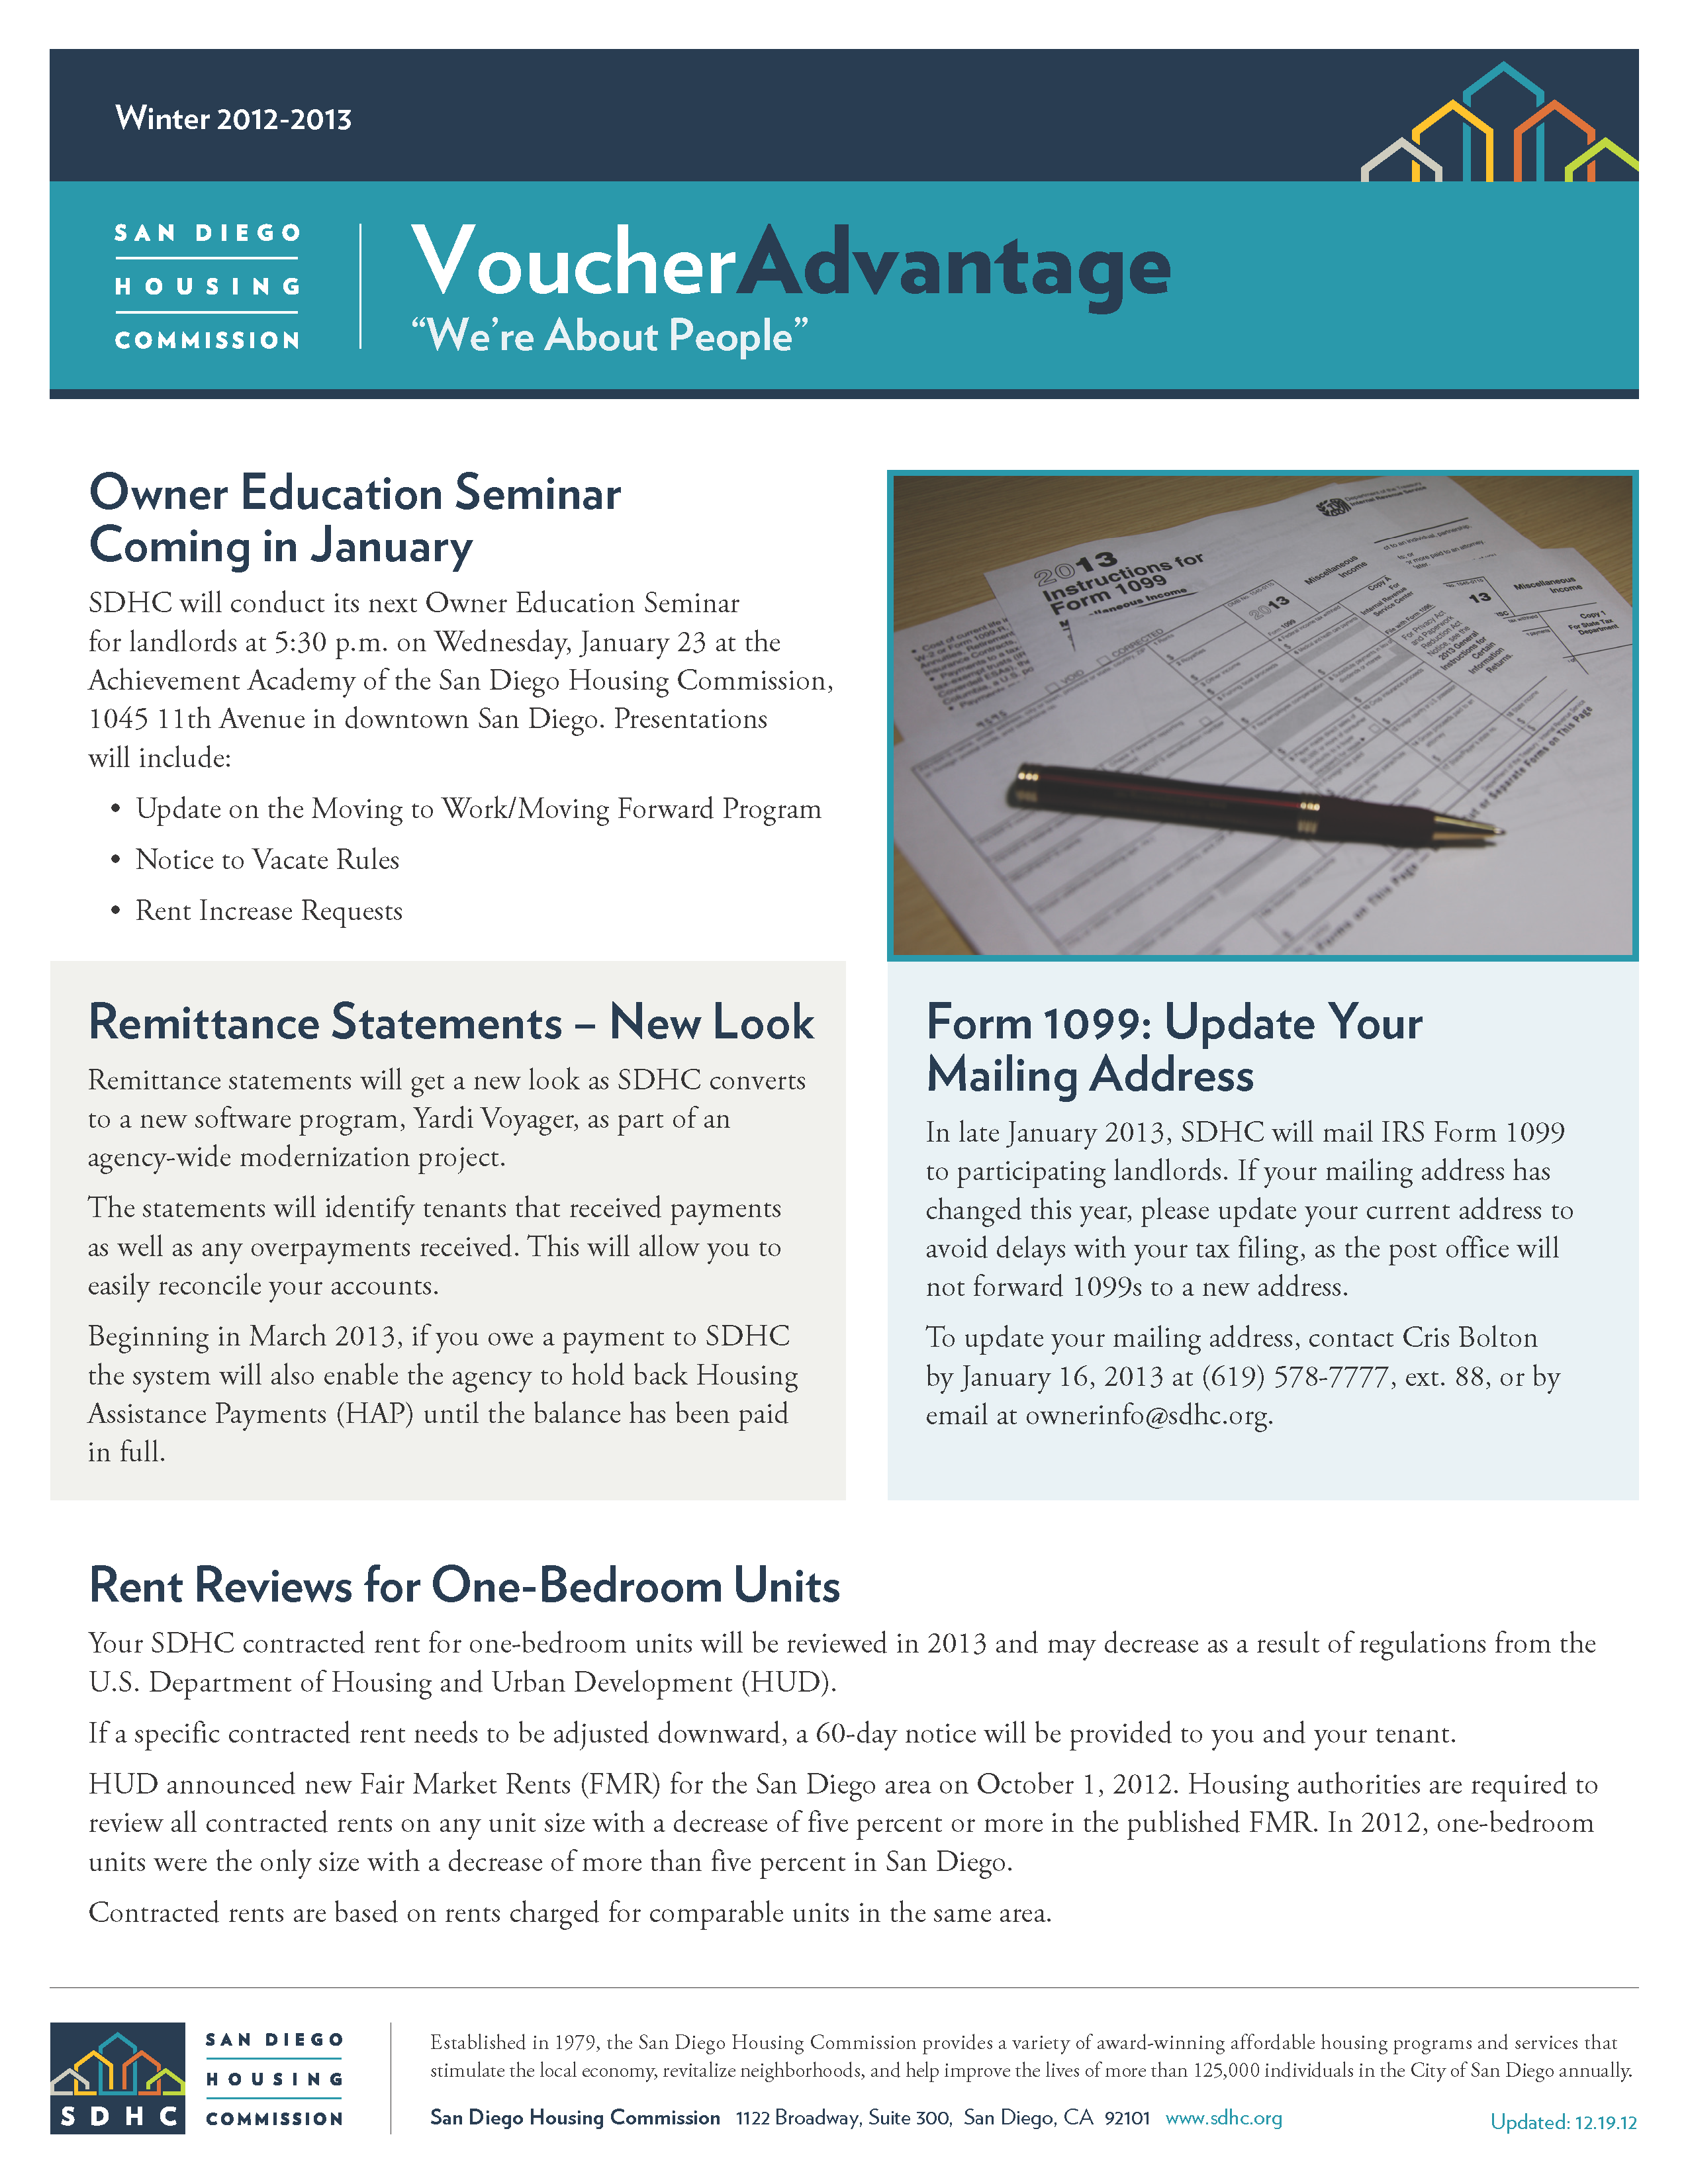 Voucher Advantage_Winter 2012-2013